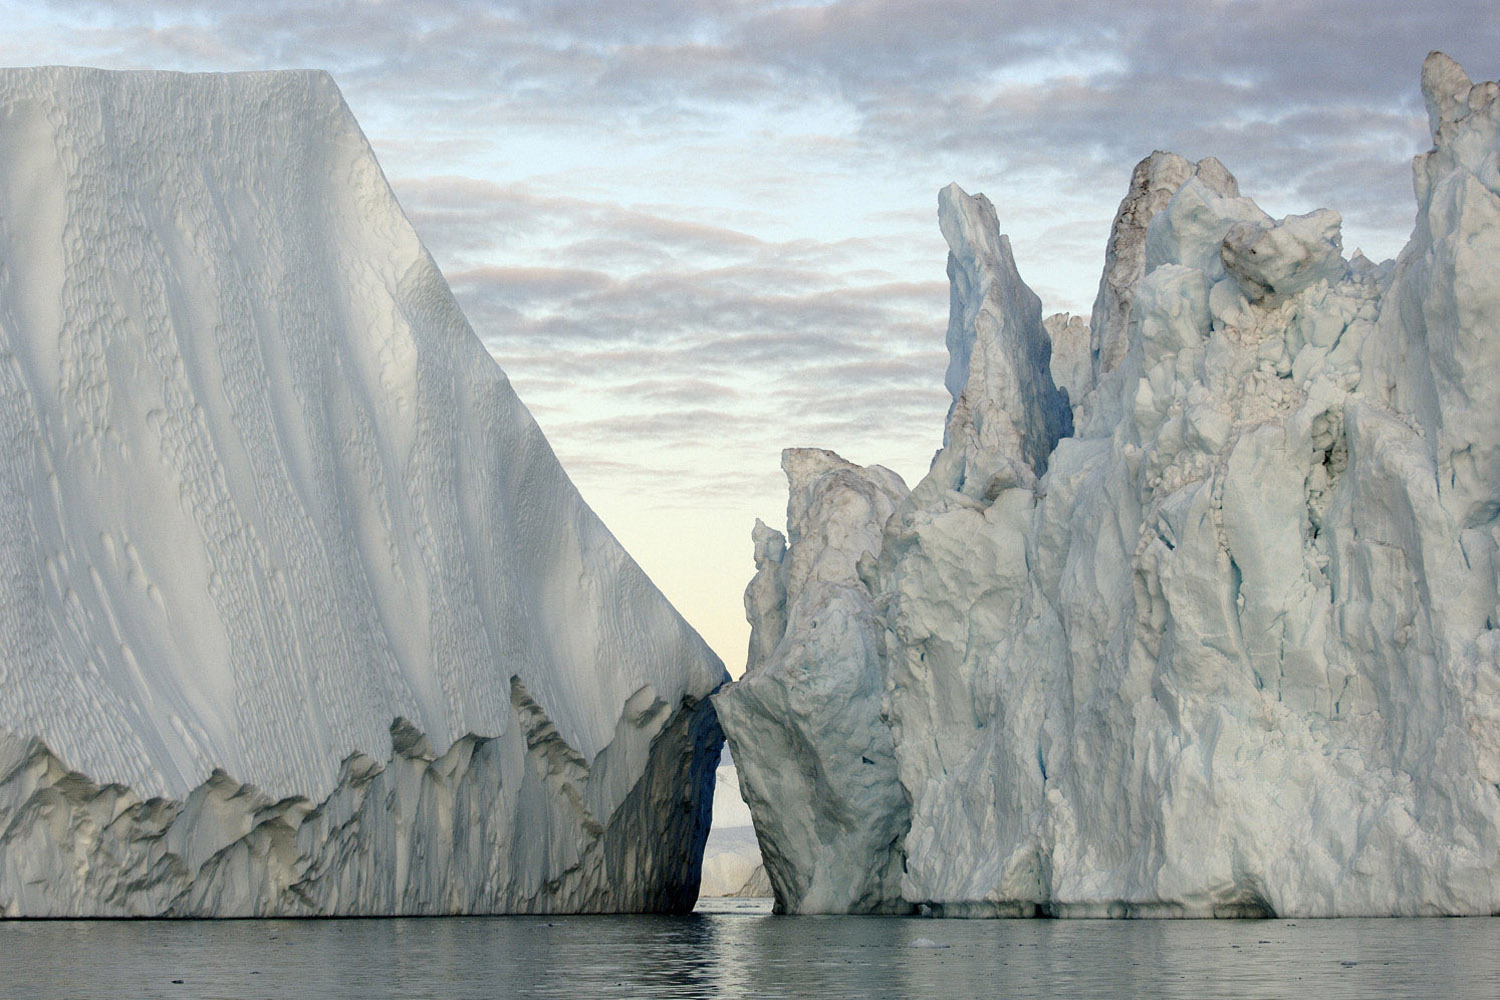 In Disko Bay, Greenland, 20-story high icebergs broken off from the Greenland Ice Sheet float into the North Atlantic, raising sea level.